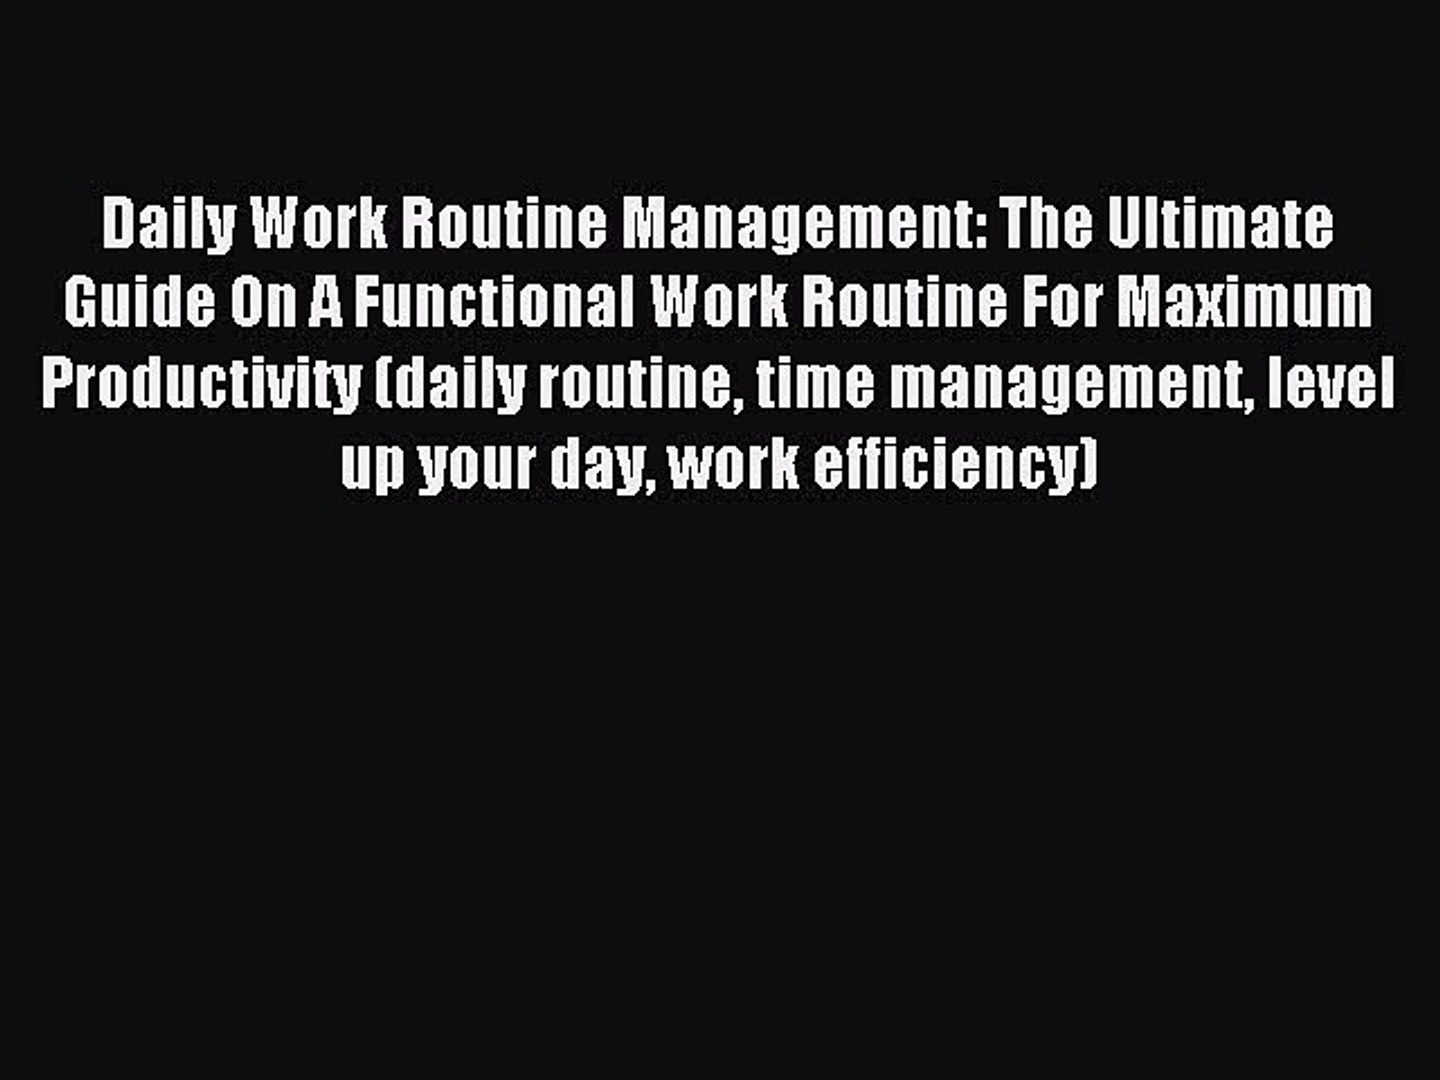 Read Daily Work Routine Management: The Ultimate Guide On A Functional Work Routine For Maximum